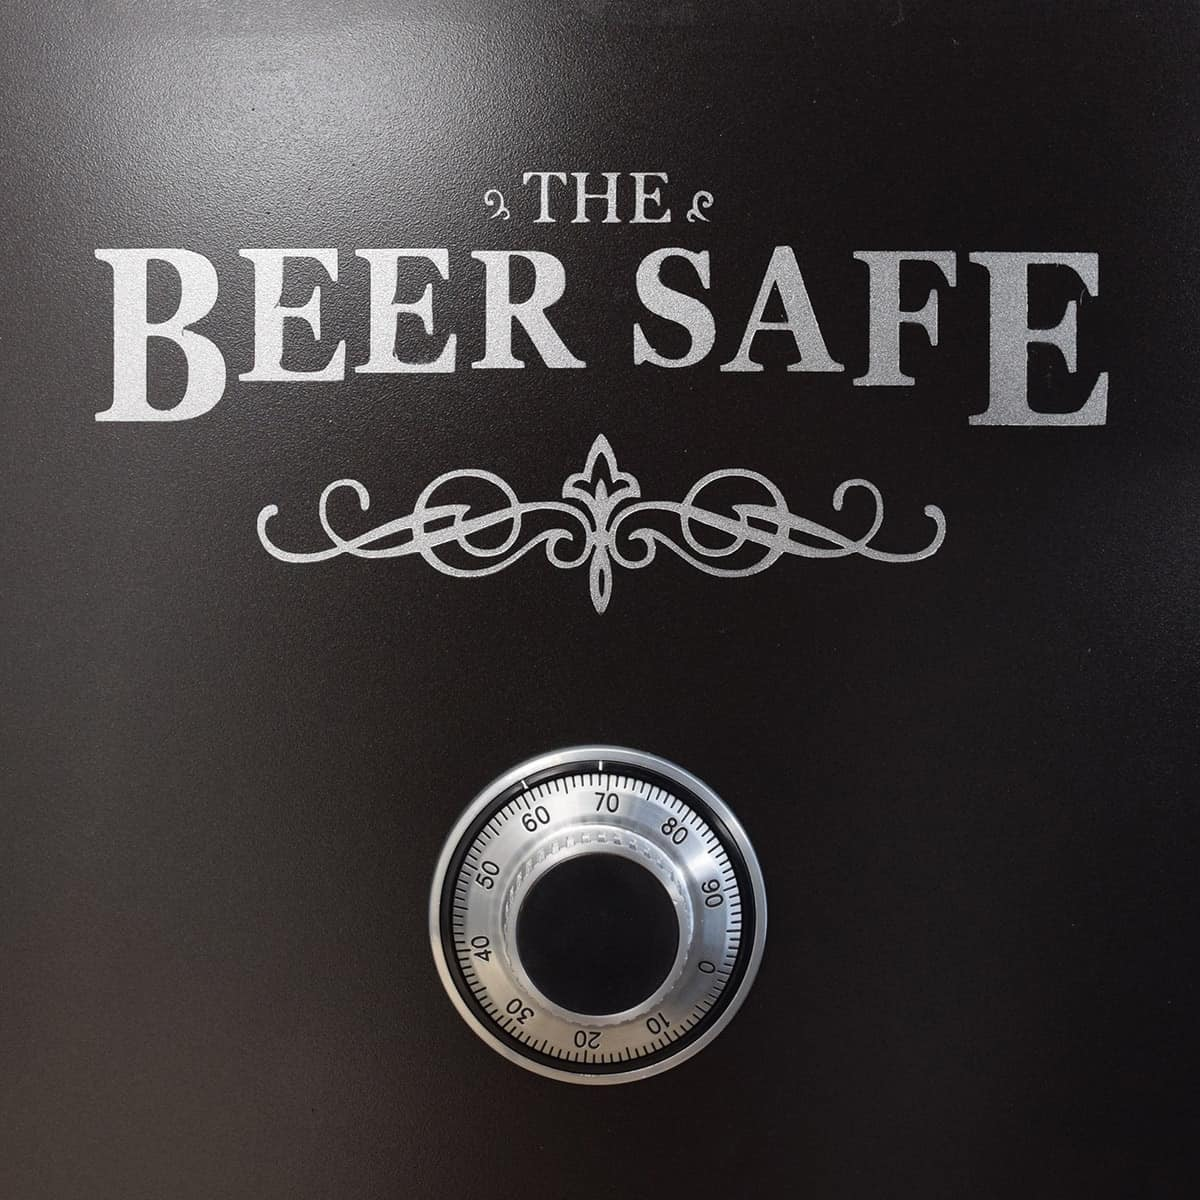 Close up of beer safe stencil detail on black mini fridge with authentic safe dial.